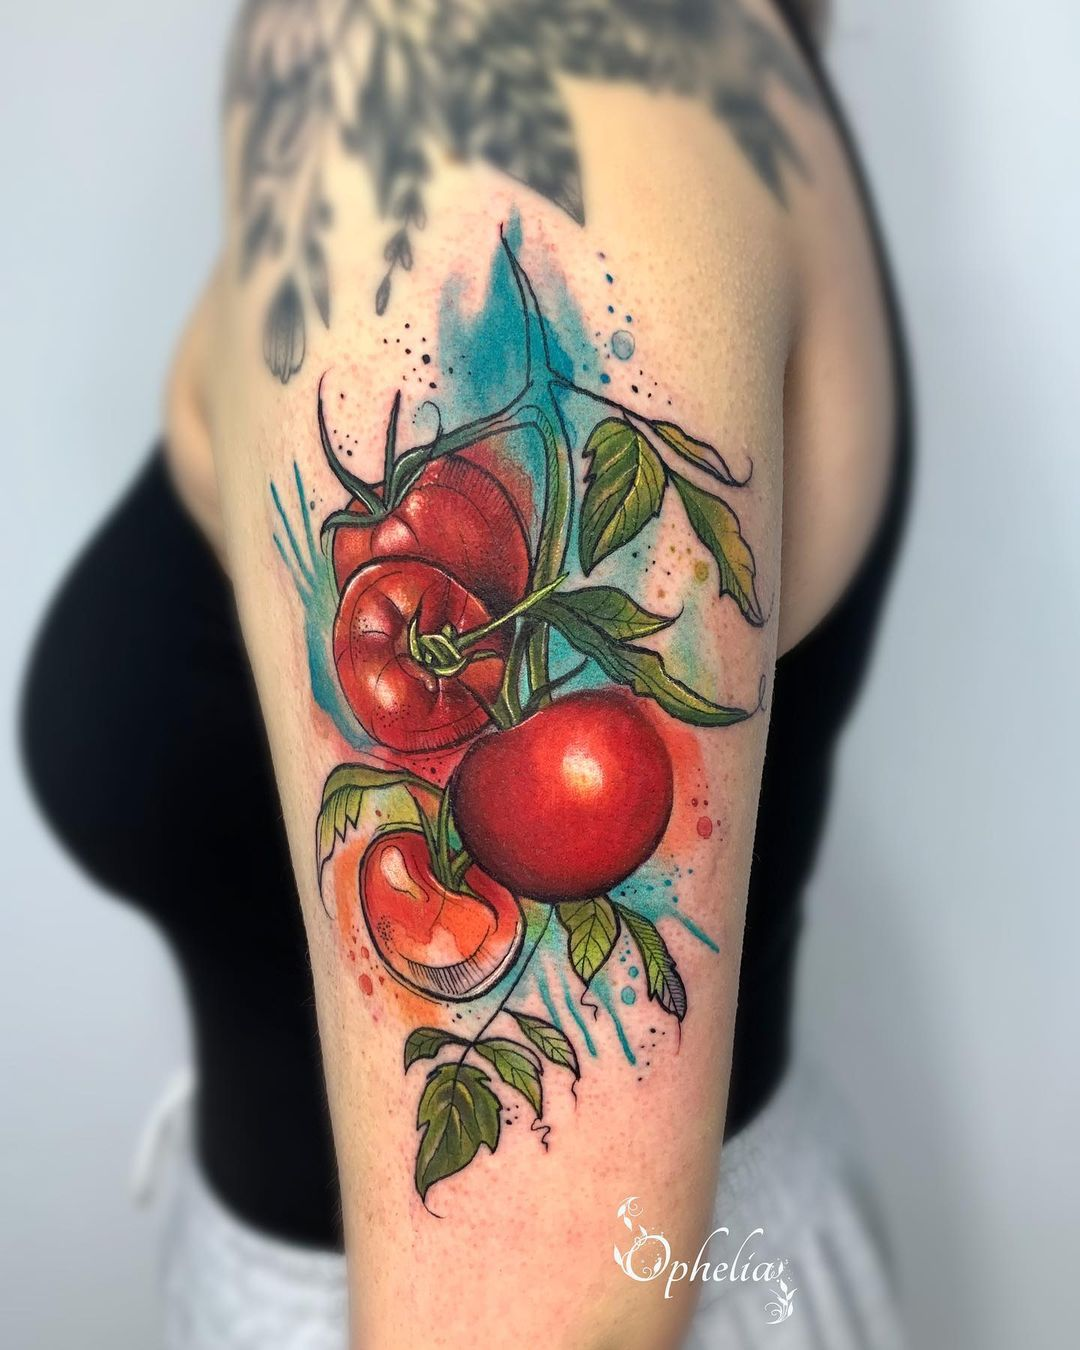 25 chef tattoo ideas for those looking to share their passion for cooking